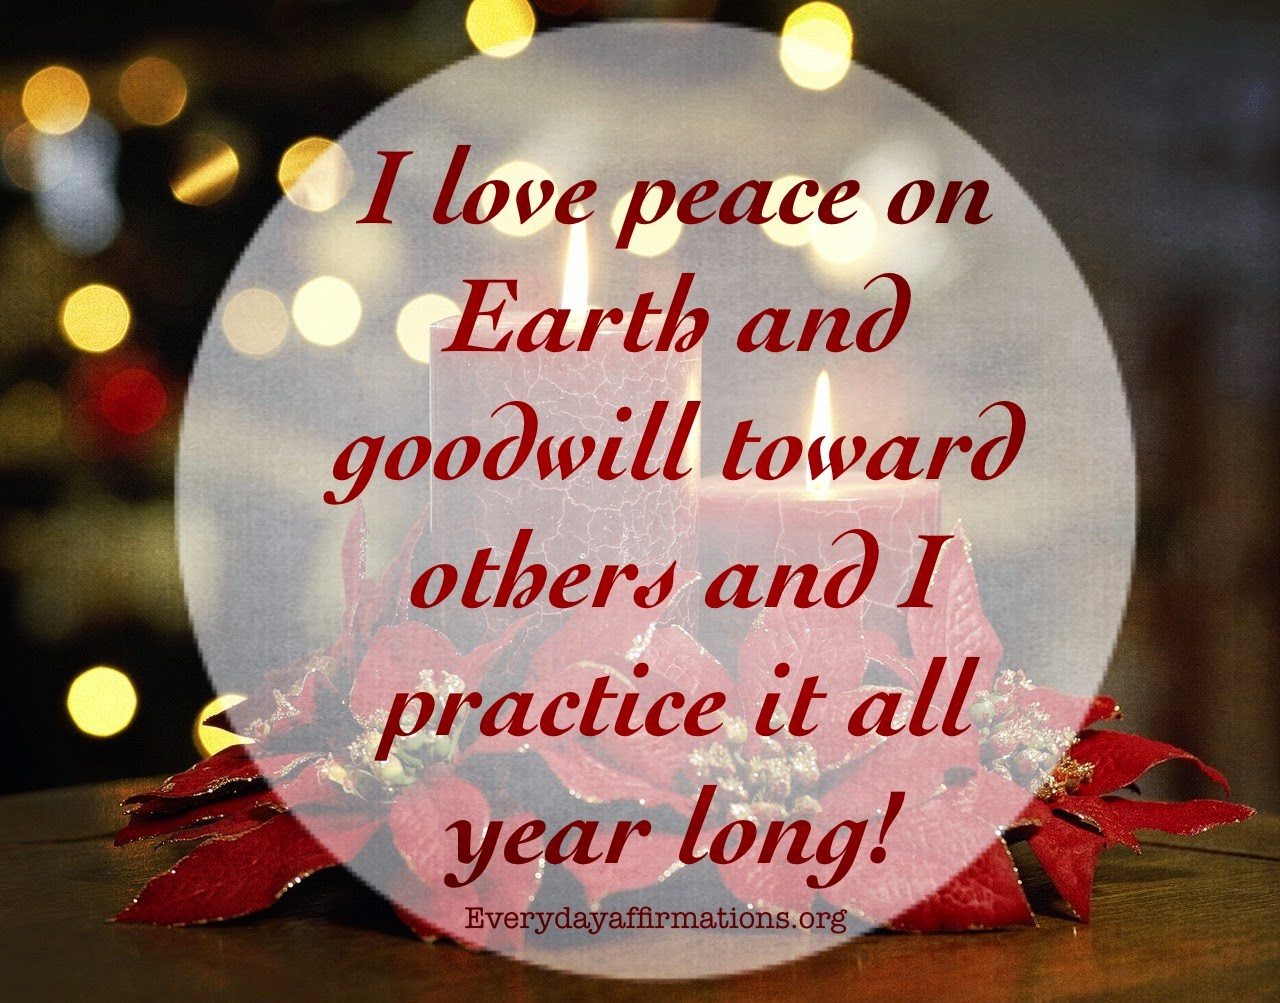 Daily Affirmations, Affirmations for Christmas, Affirmations for New Year